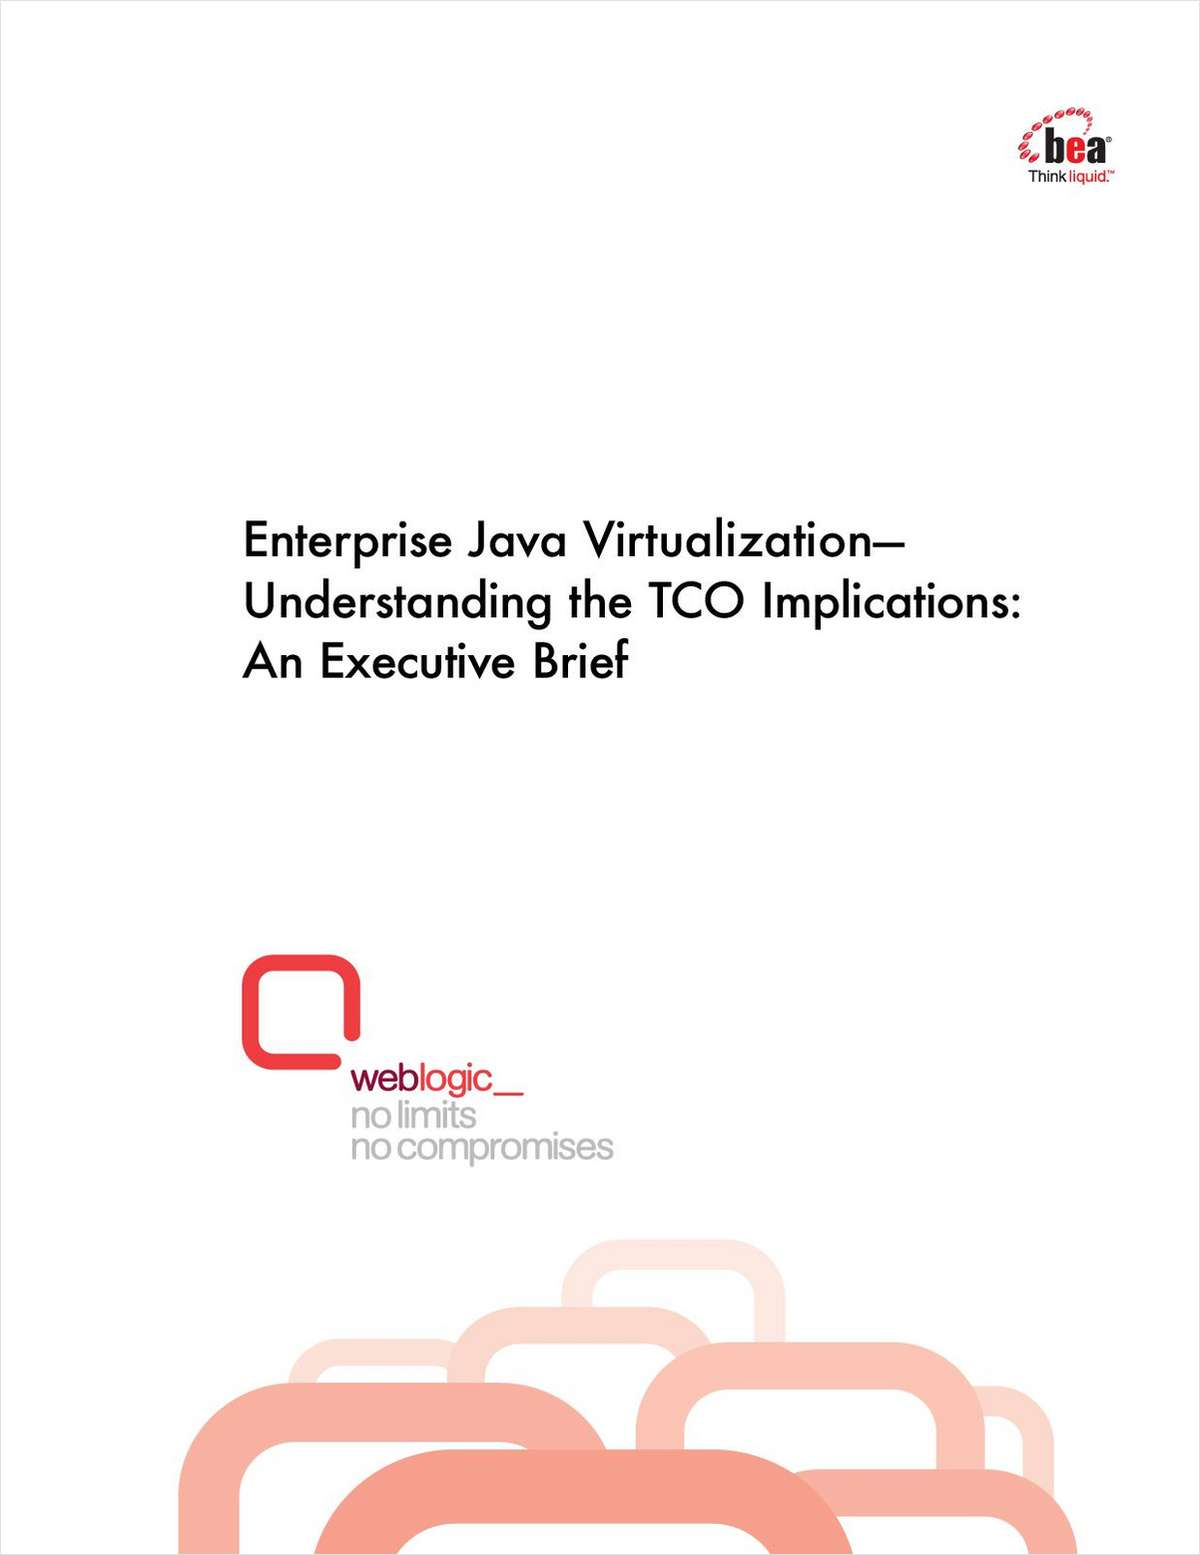 Enterprise Java Virtualization—Understanding the TCO Implications